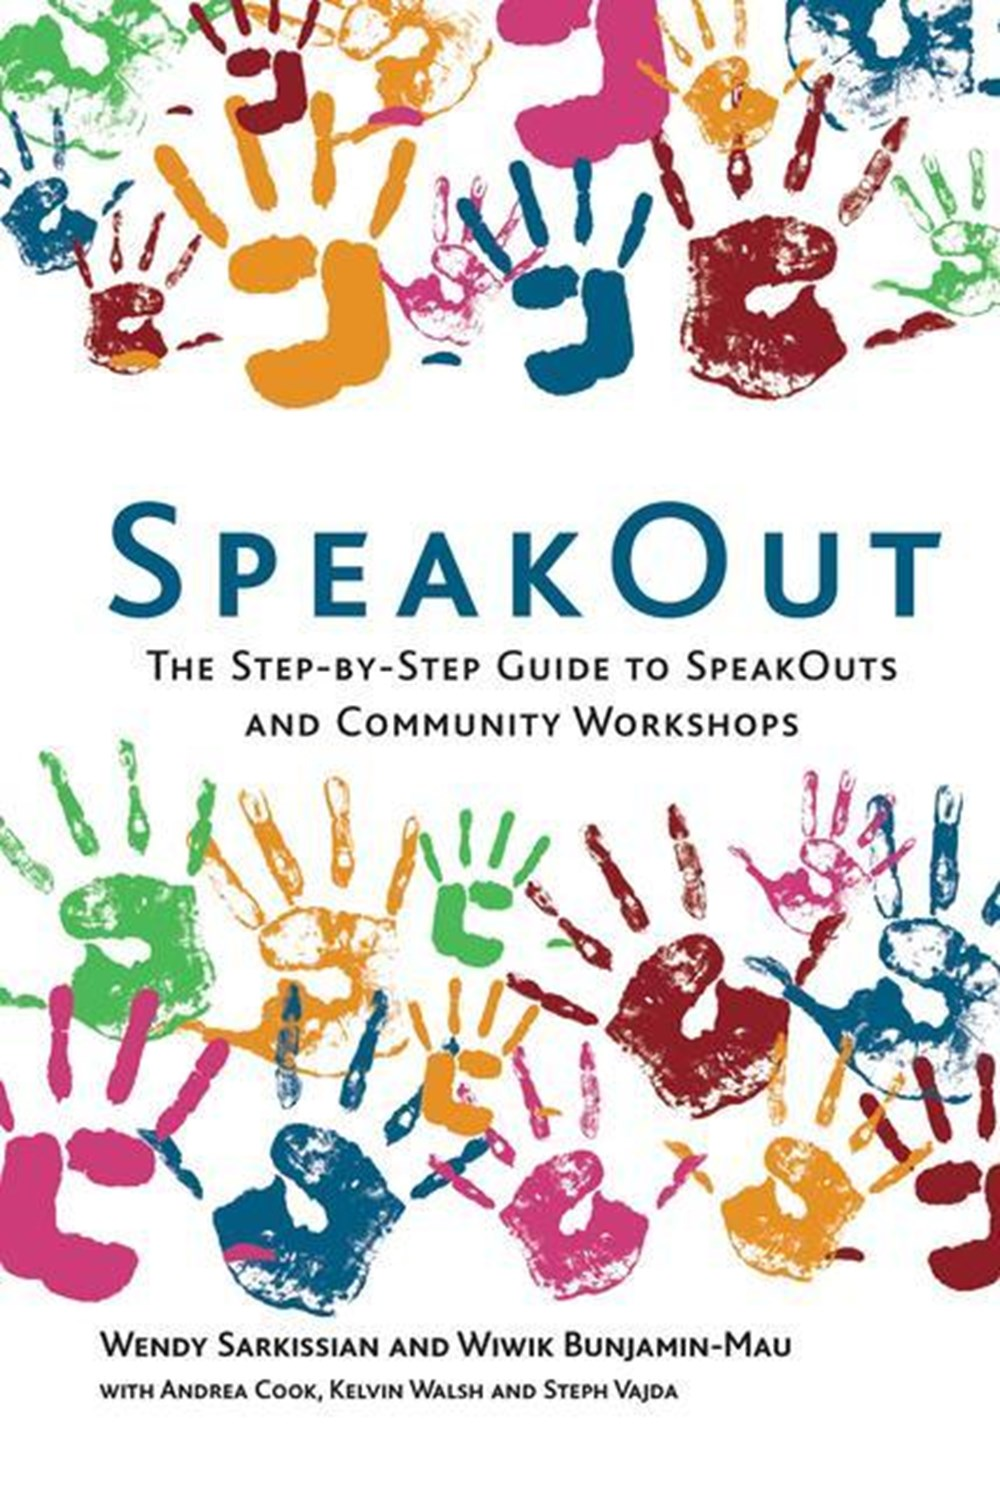 Speakout The Step-By-Step Guide to Speakouts and Community Workshops